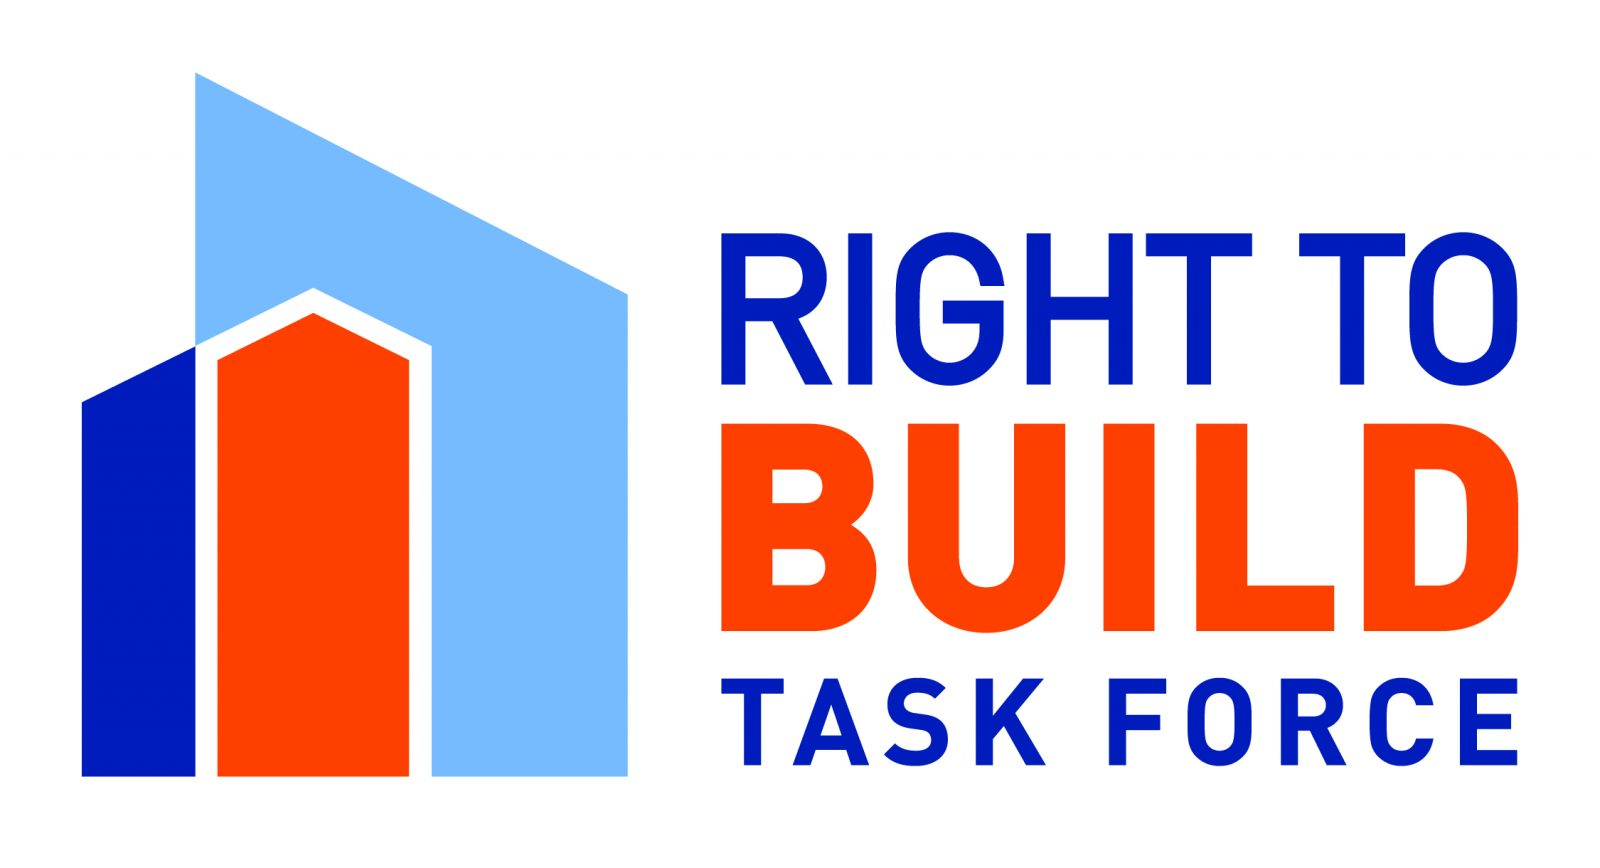 Right to Build Task Force logo